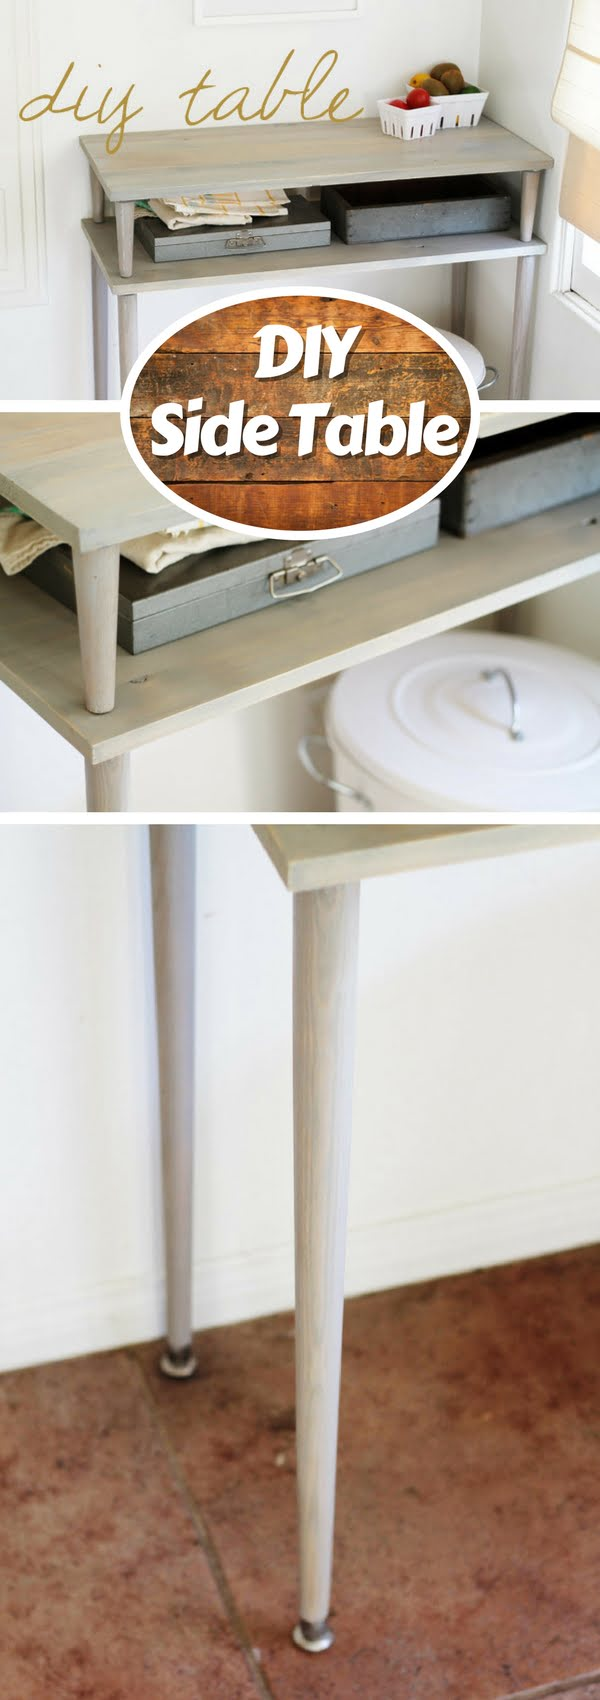 Check out how to build a DIY side table